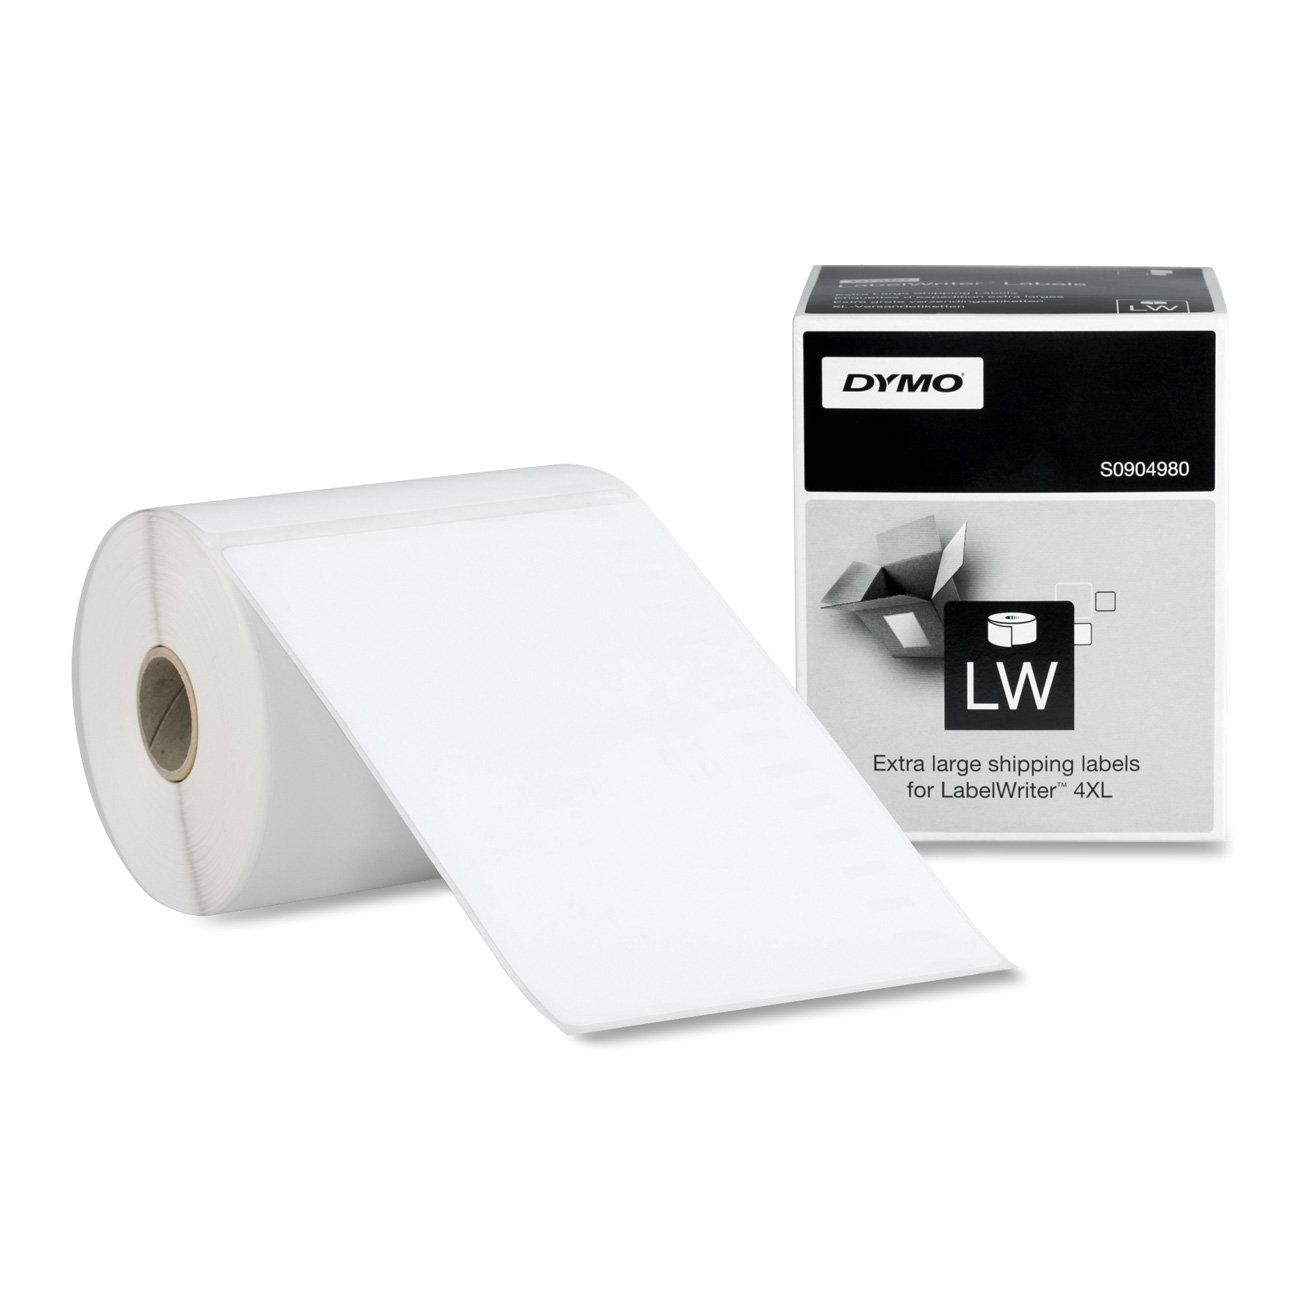 DYMO Authentic LW Extra-Large Shipping Labels for LabelWriter Label Printers, White, 4'' x 6'', 1 roll of 220 (1744907)